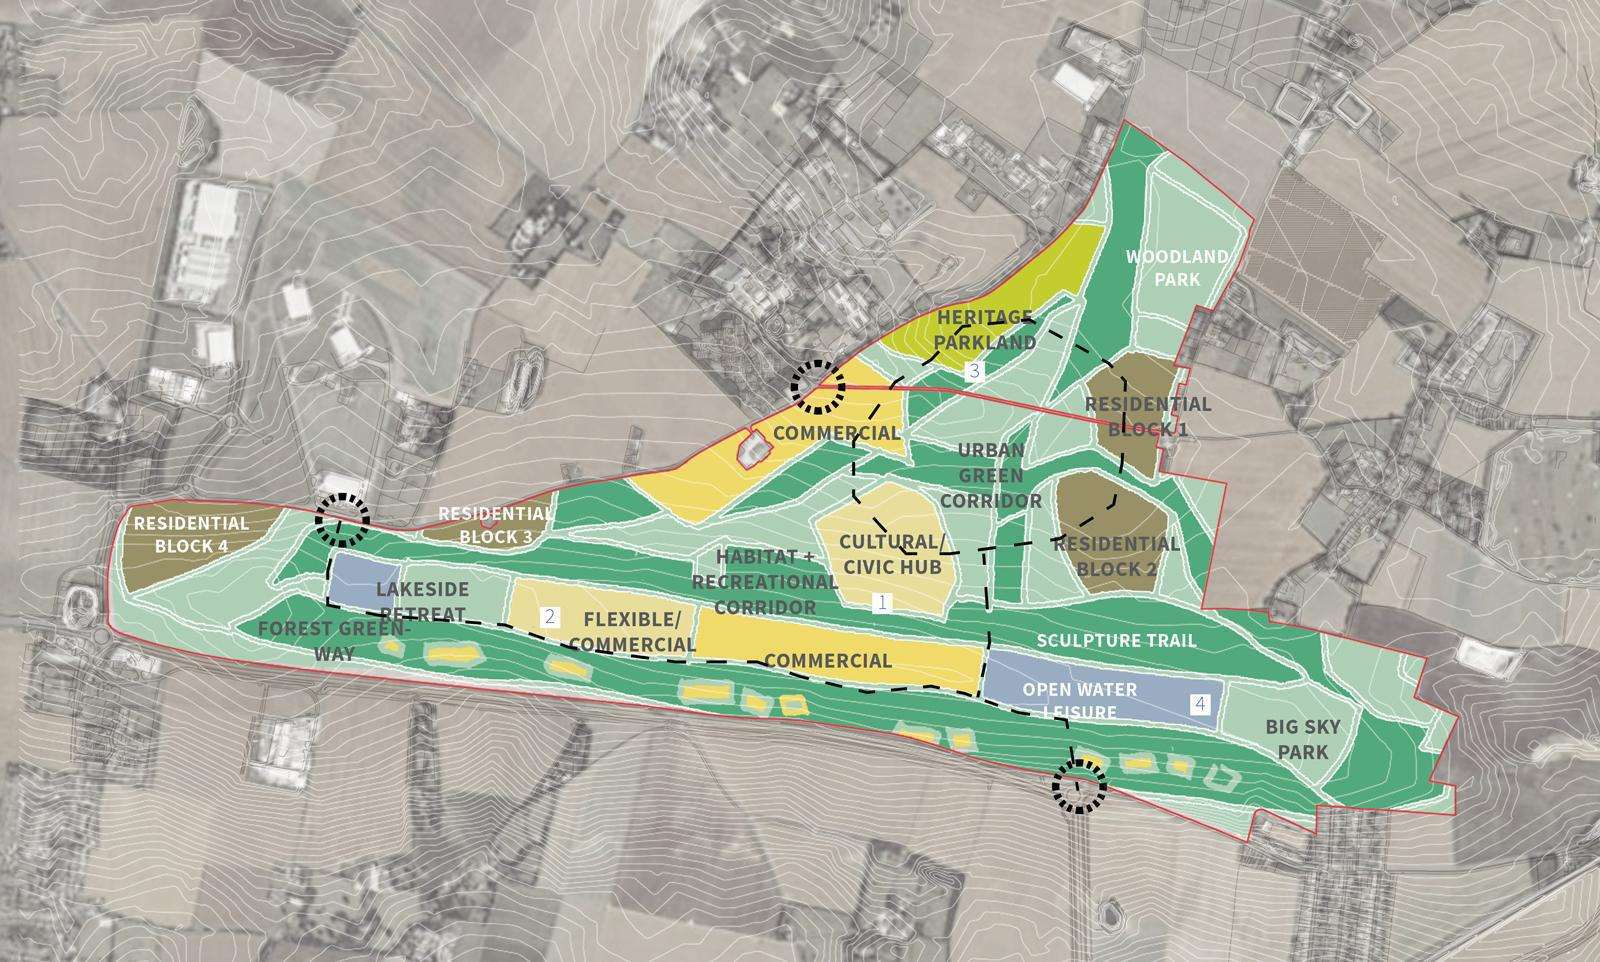 How the former Manston airport site could look